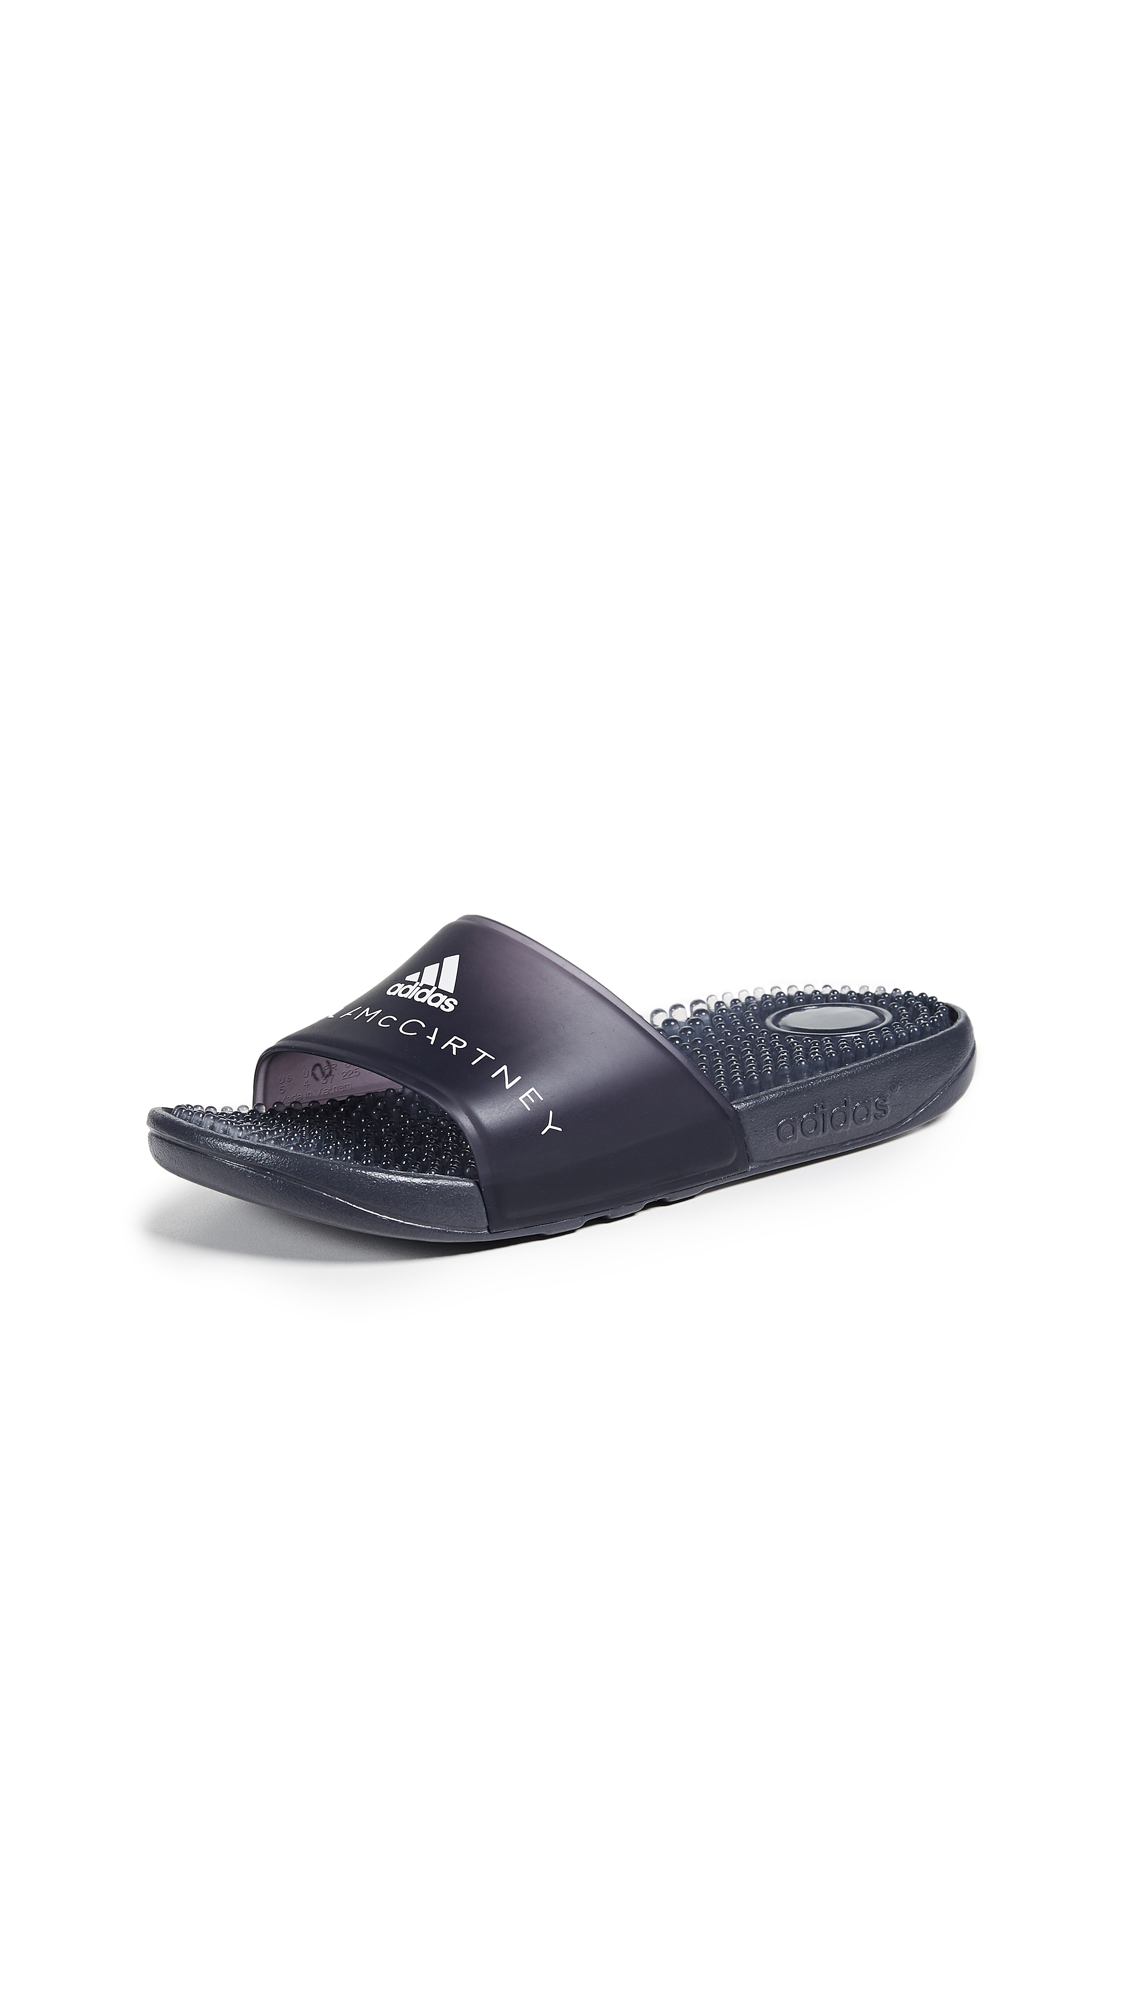 adidas by Stella McCartney Adissage W Slides - Night Steel/Night Steel/White